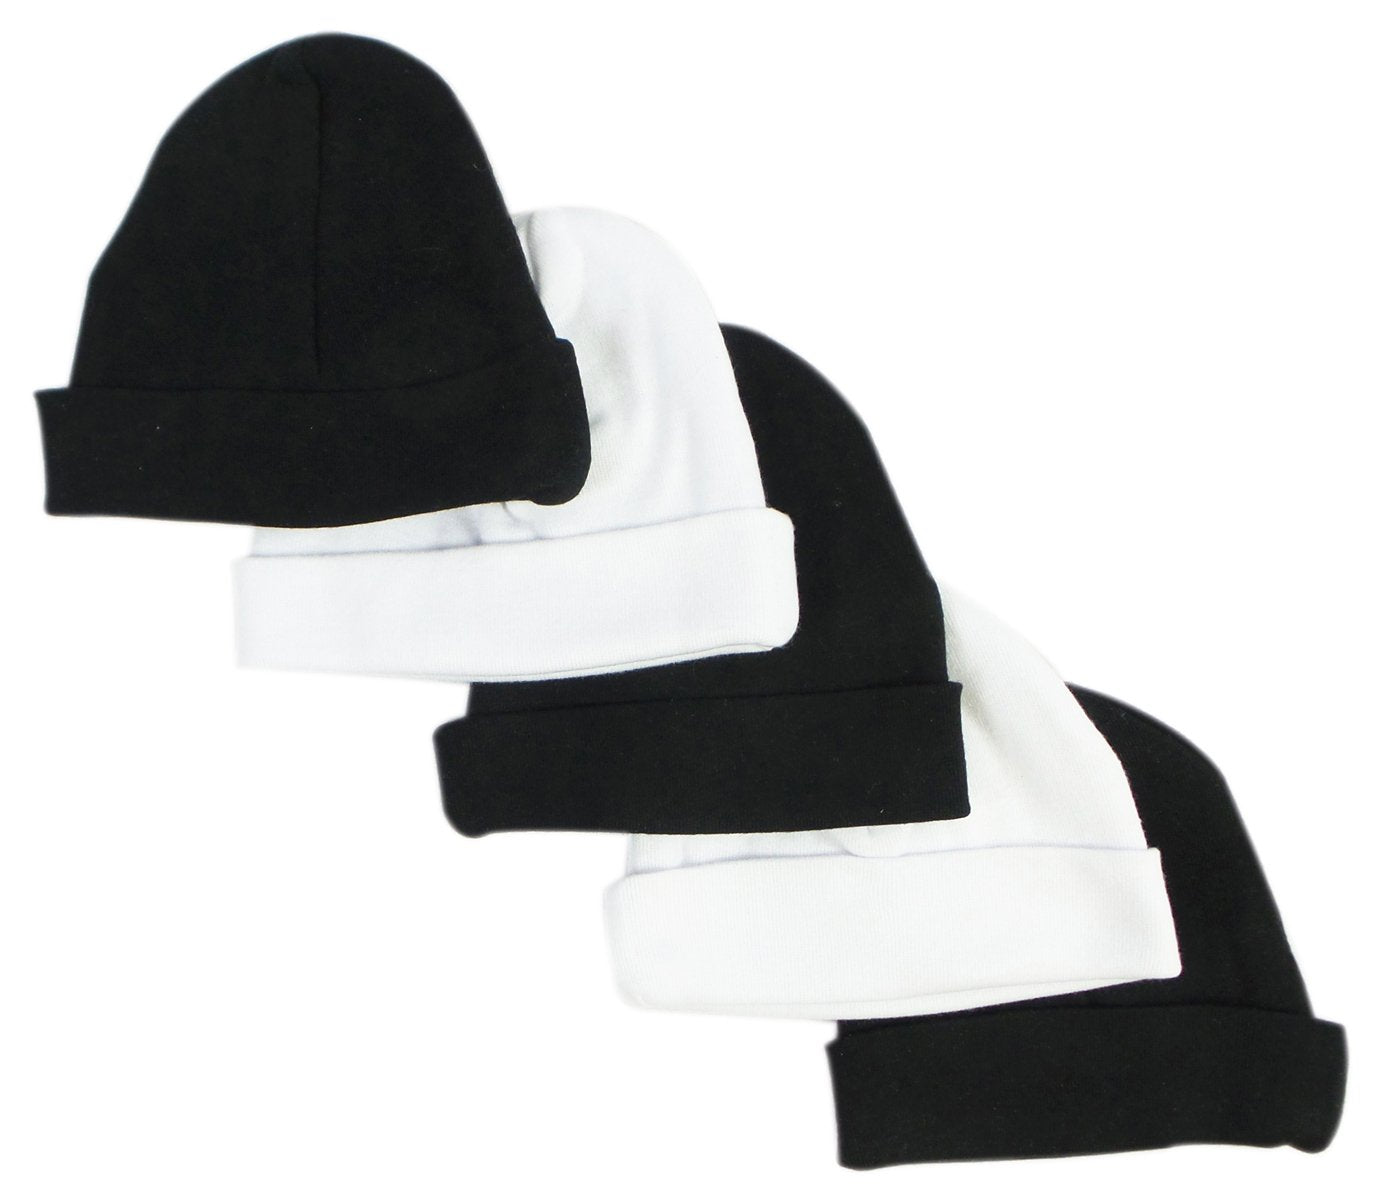 Bambini Black & White Baby Caps (Pack of 5) - Baby World Inc